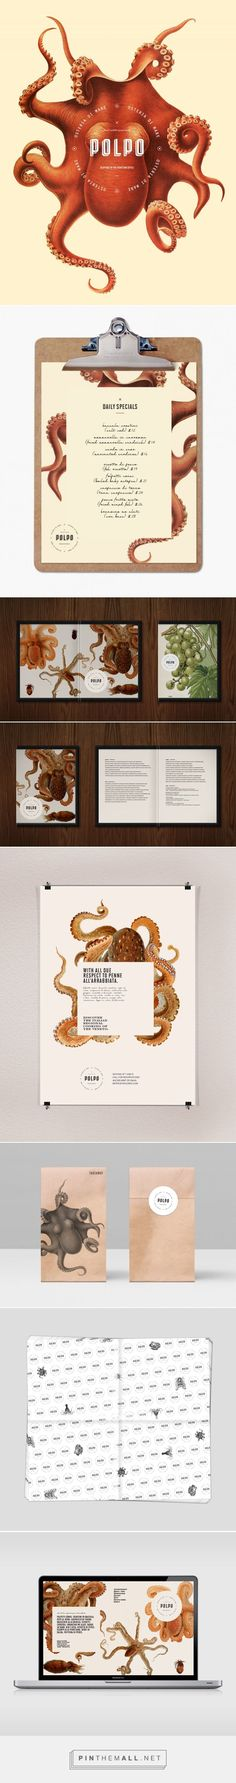 Polpo Restaurant Branding and Menu Design by Richard Marazzi | Fivestar Branding Agency – Design and Branding Agency & Inspiration Gallery - created via https://pinthemall.net